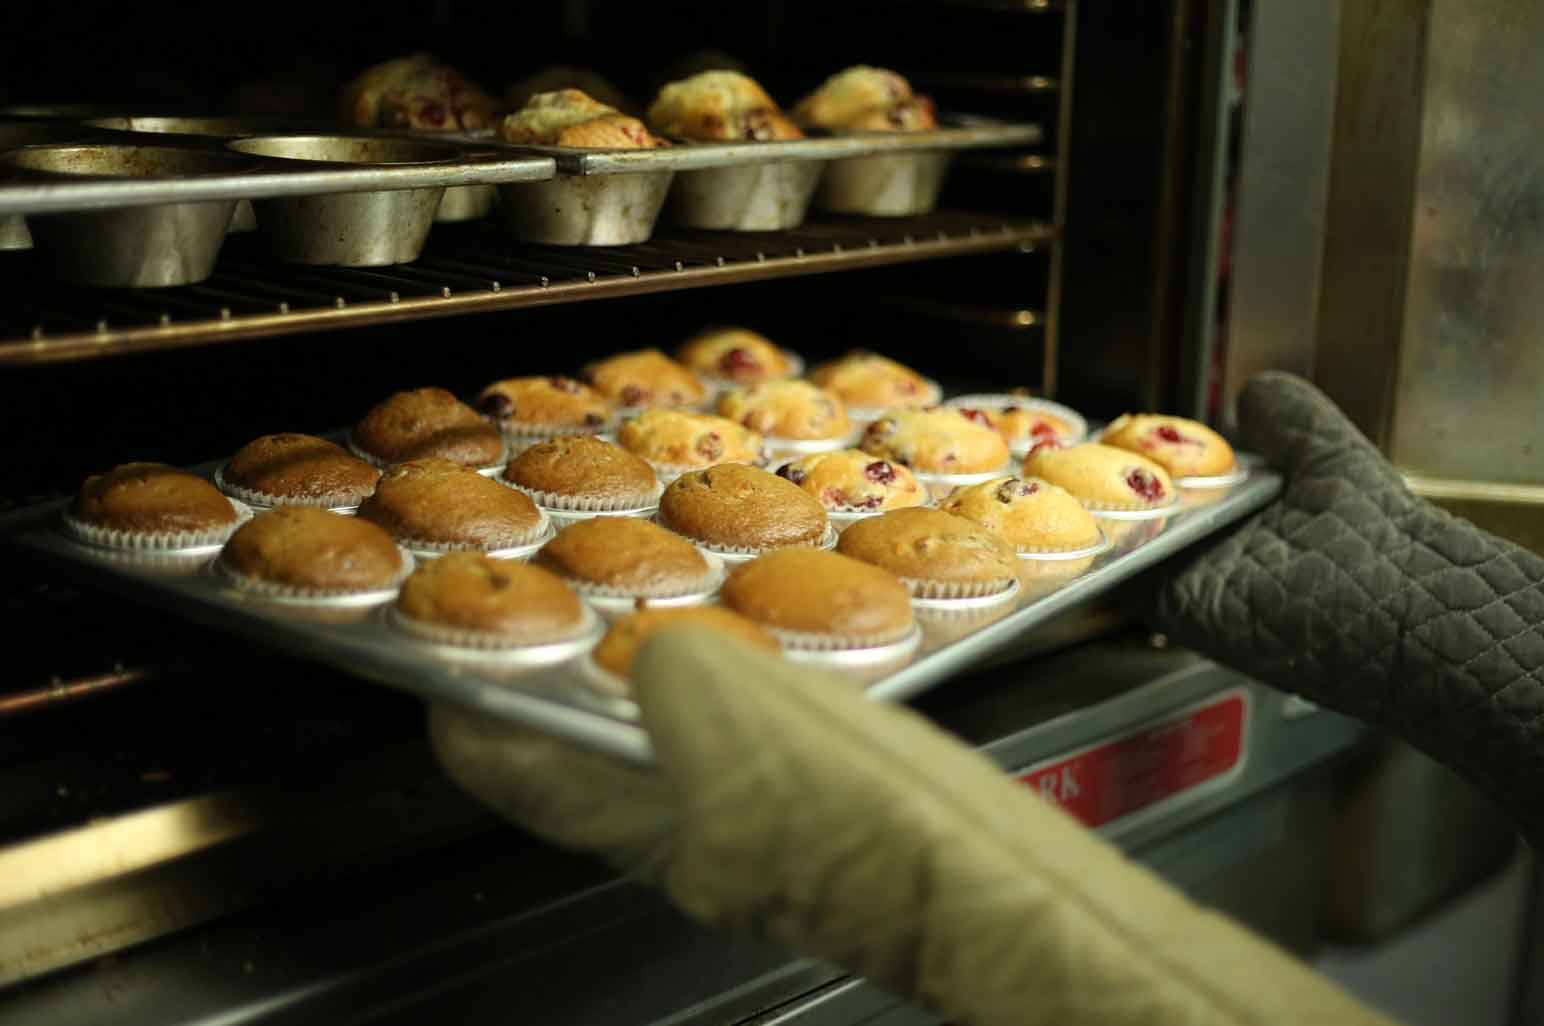 Want to Get Into Baking? Here's What You Need to Know